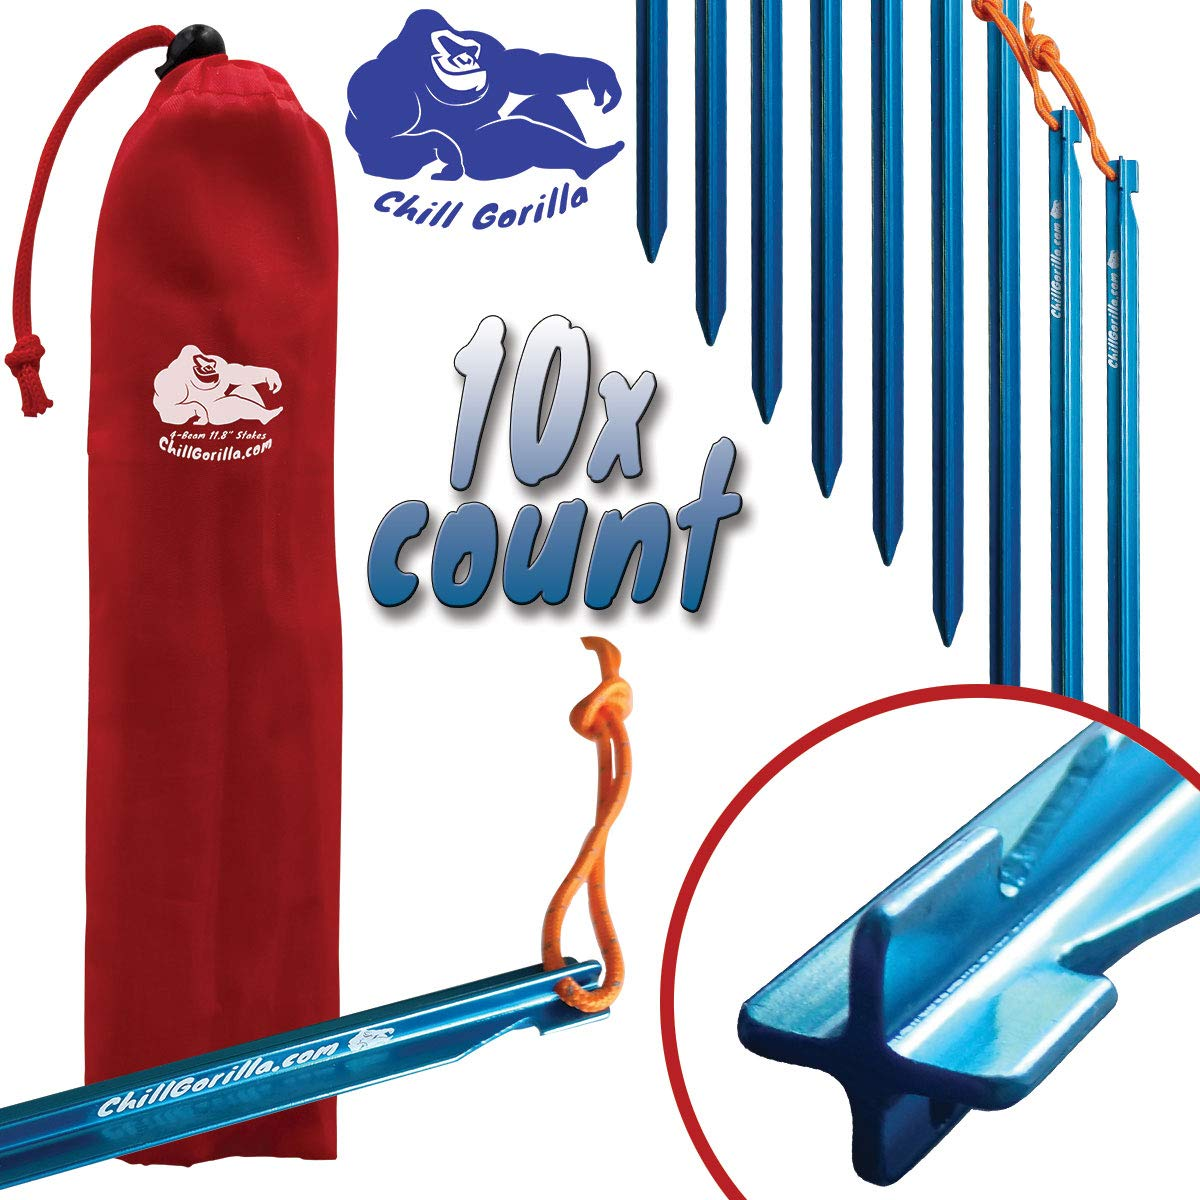 Chill Gorilla 11.8'' 10X Tent Stakes - Heavy Duty Lightweight Strong 7075 Aluminum Alloy Pegs for Camping, Rain Tarps, Hiking, Backpacking. Essential Camping Gear. ENO & MSR Accessories. Blue by Chill Gorilla